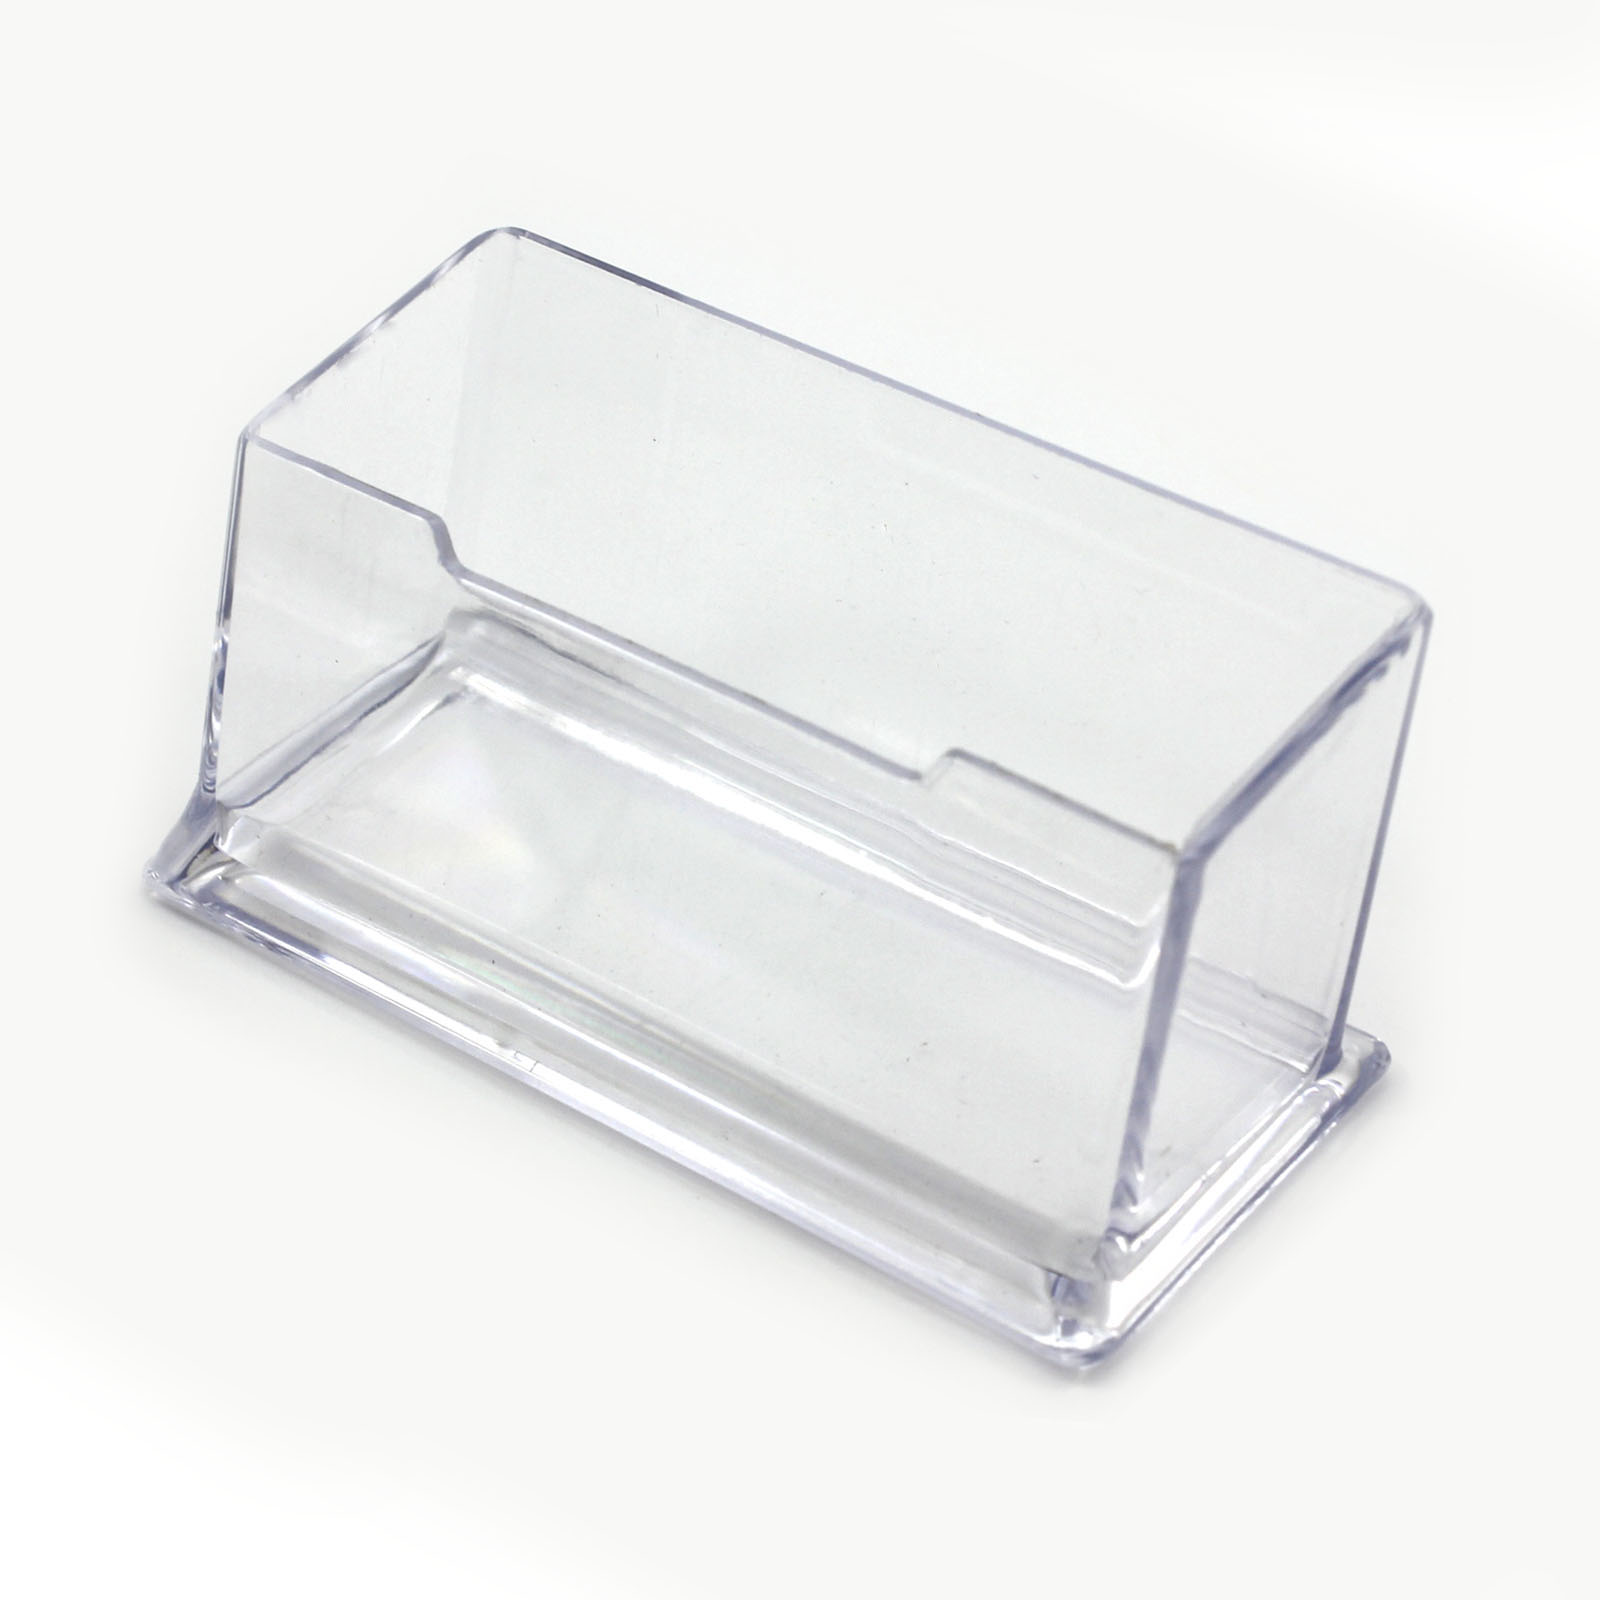 Practical Transparent Cuboid Acrylic Desktop Business Card Holder Display  Box(china (mainland))